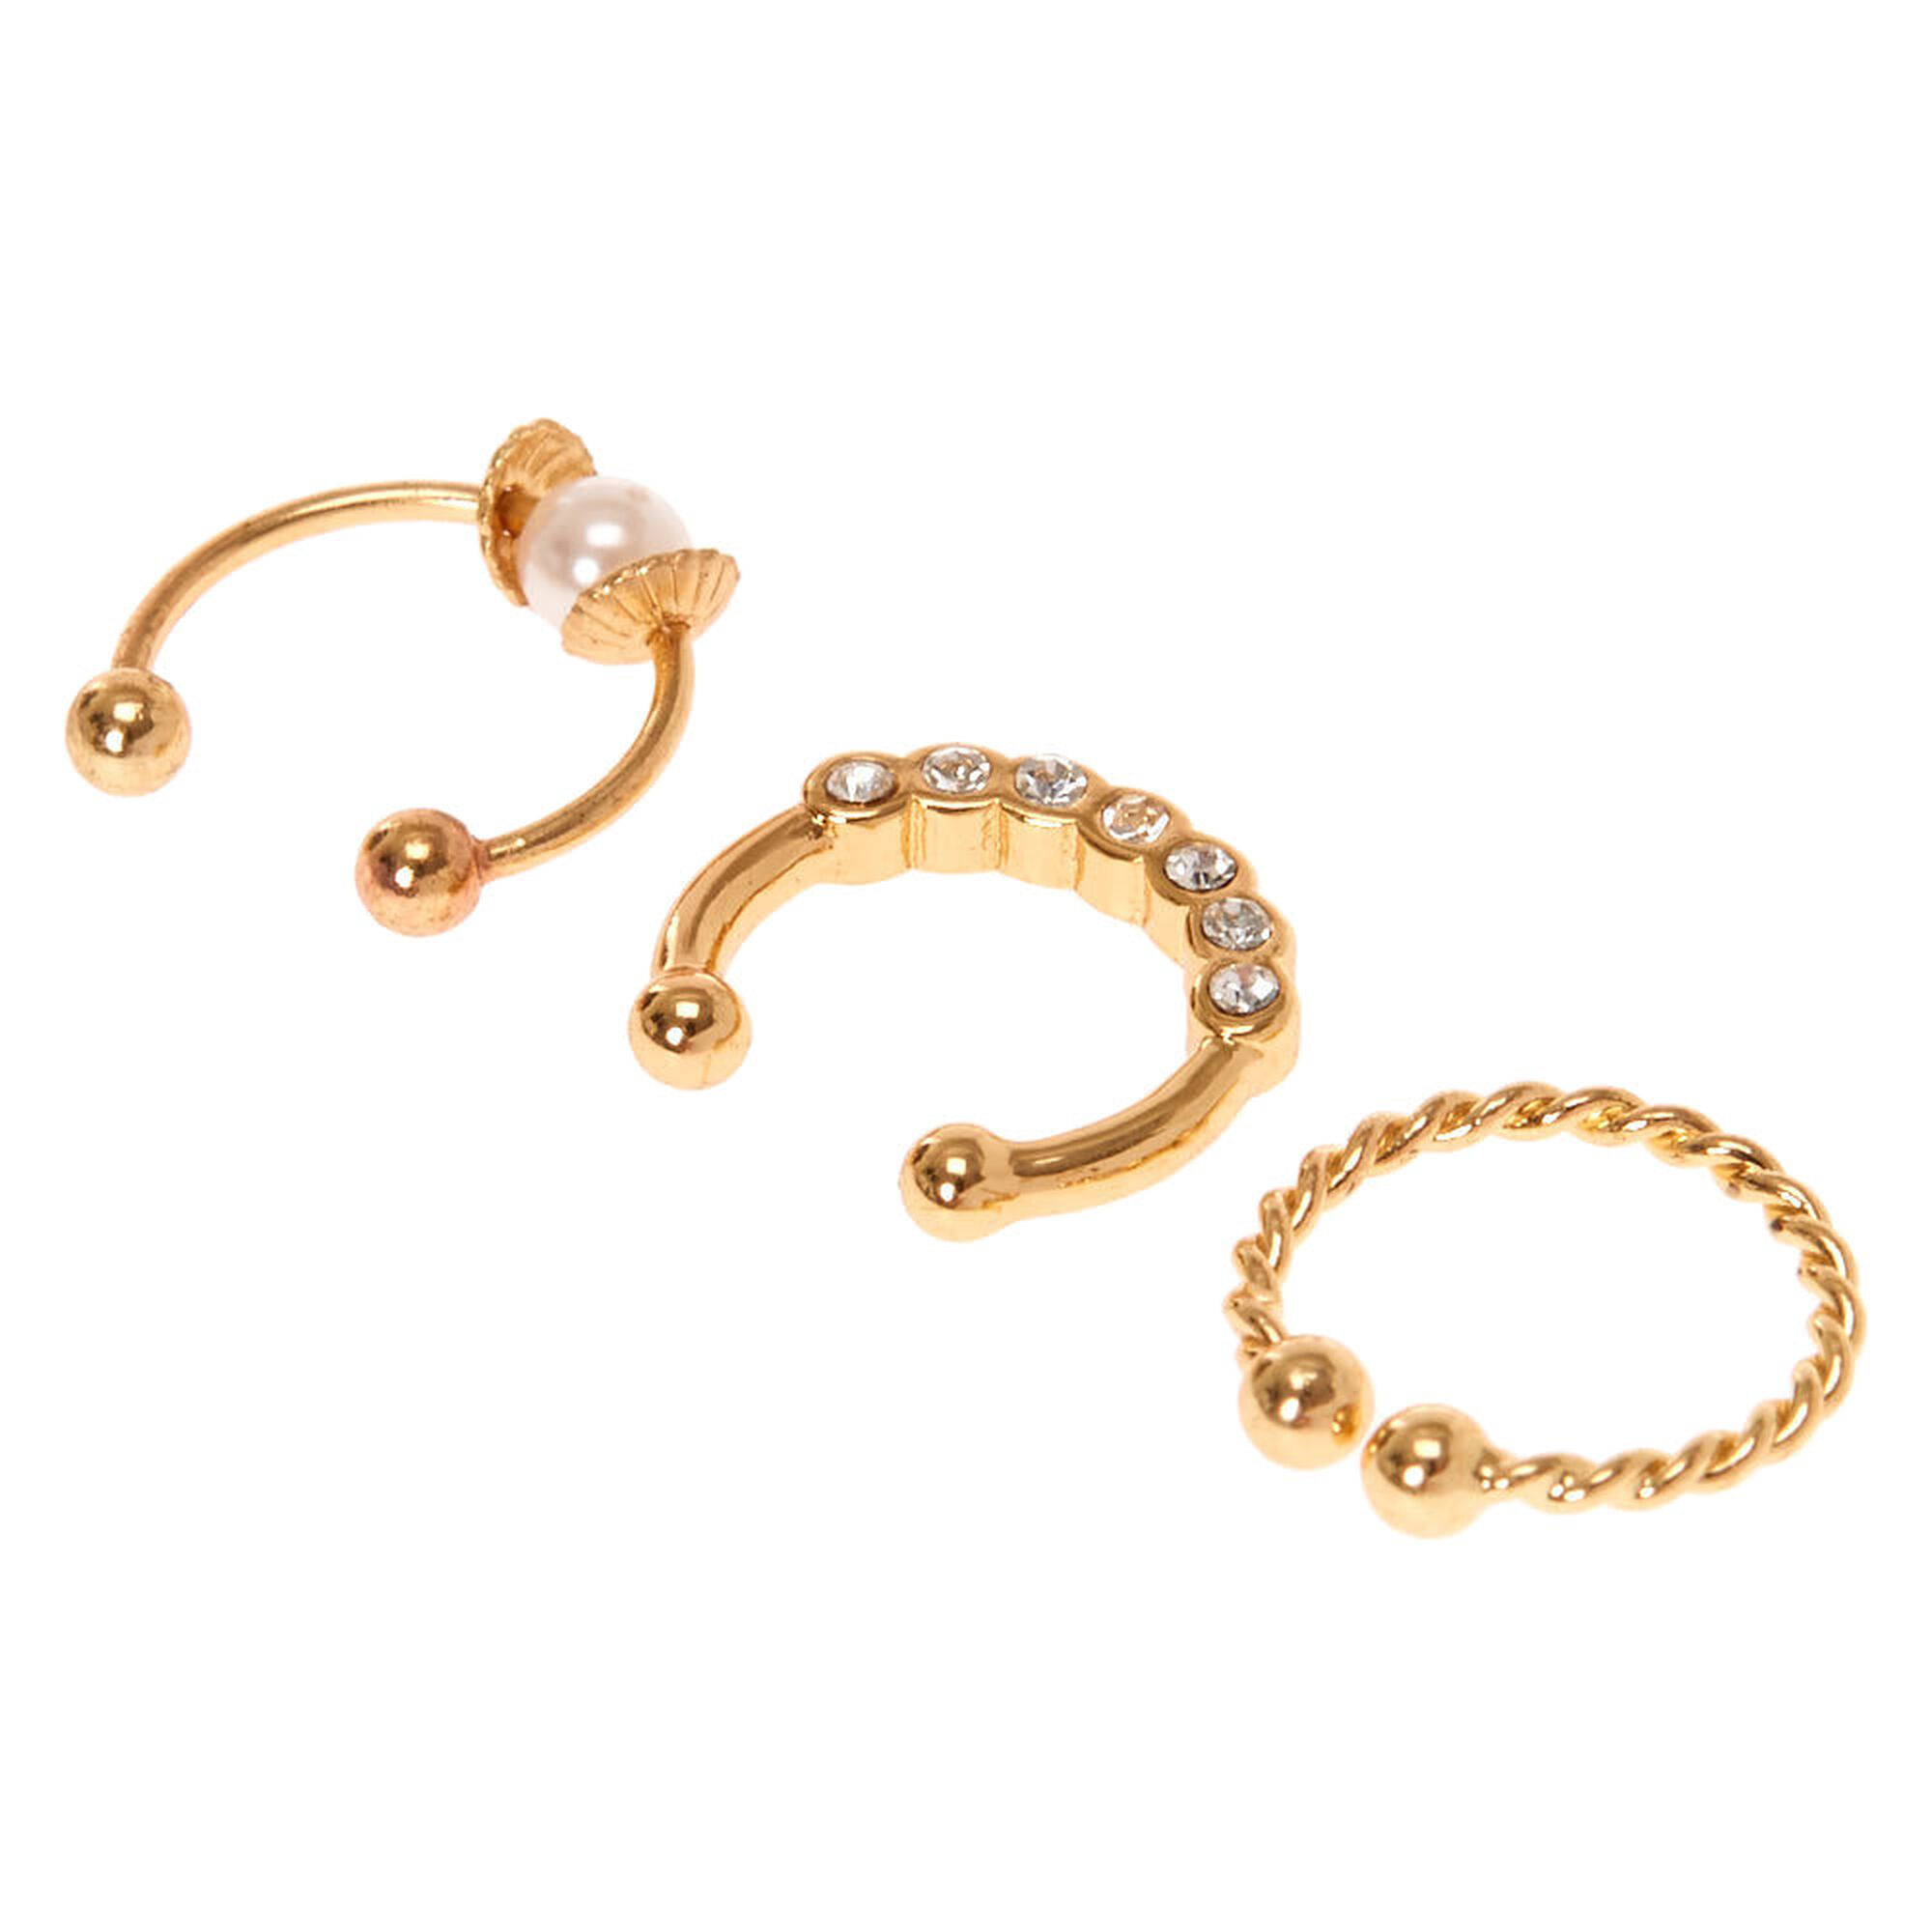 Faux Gold Braided Crystal Cartilage Earrings